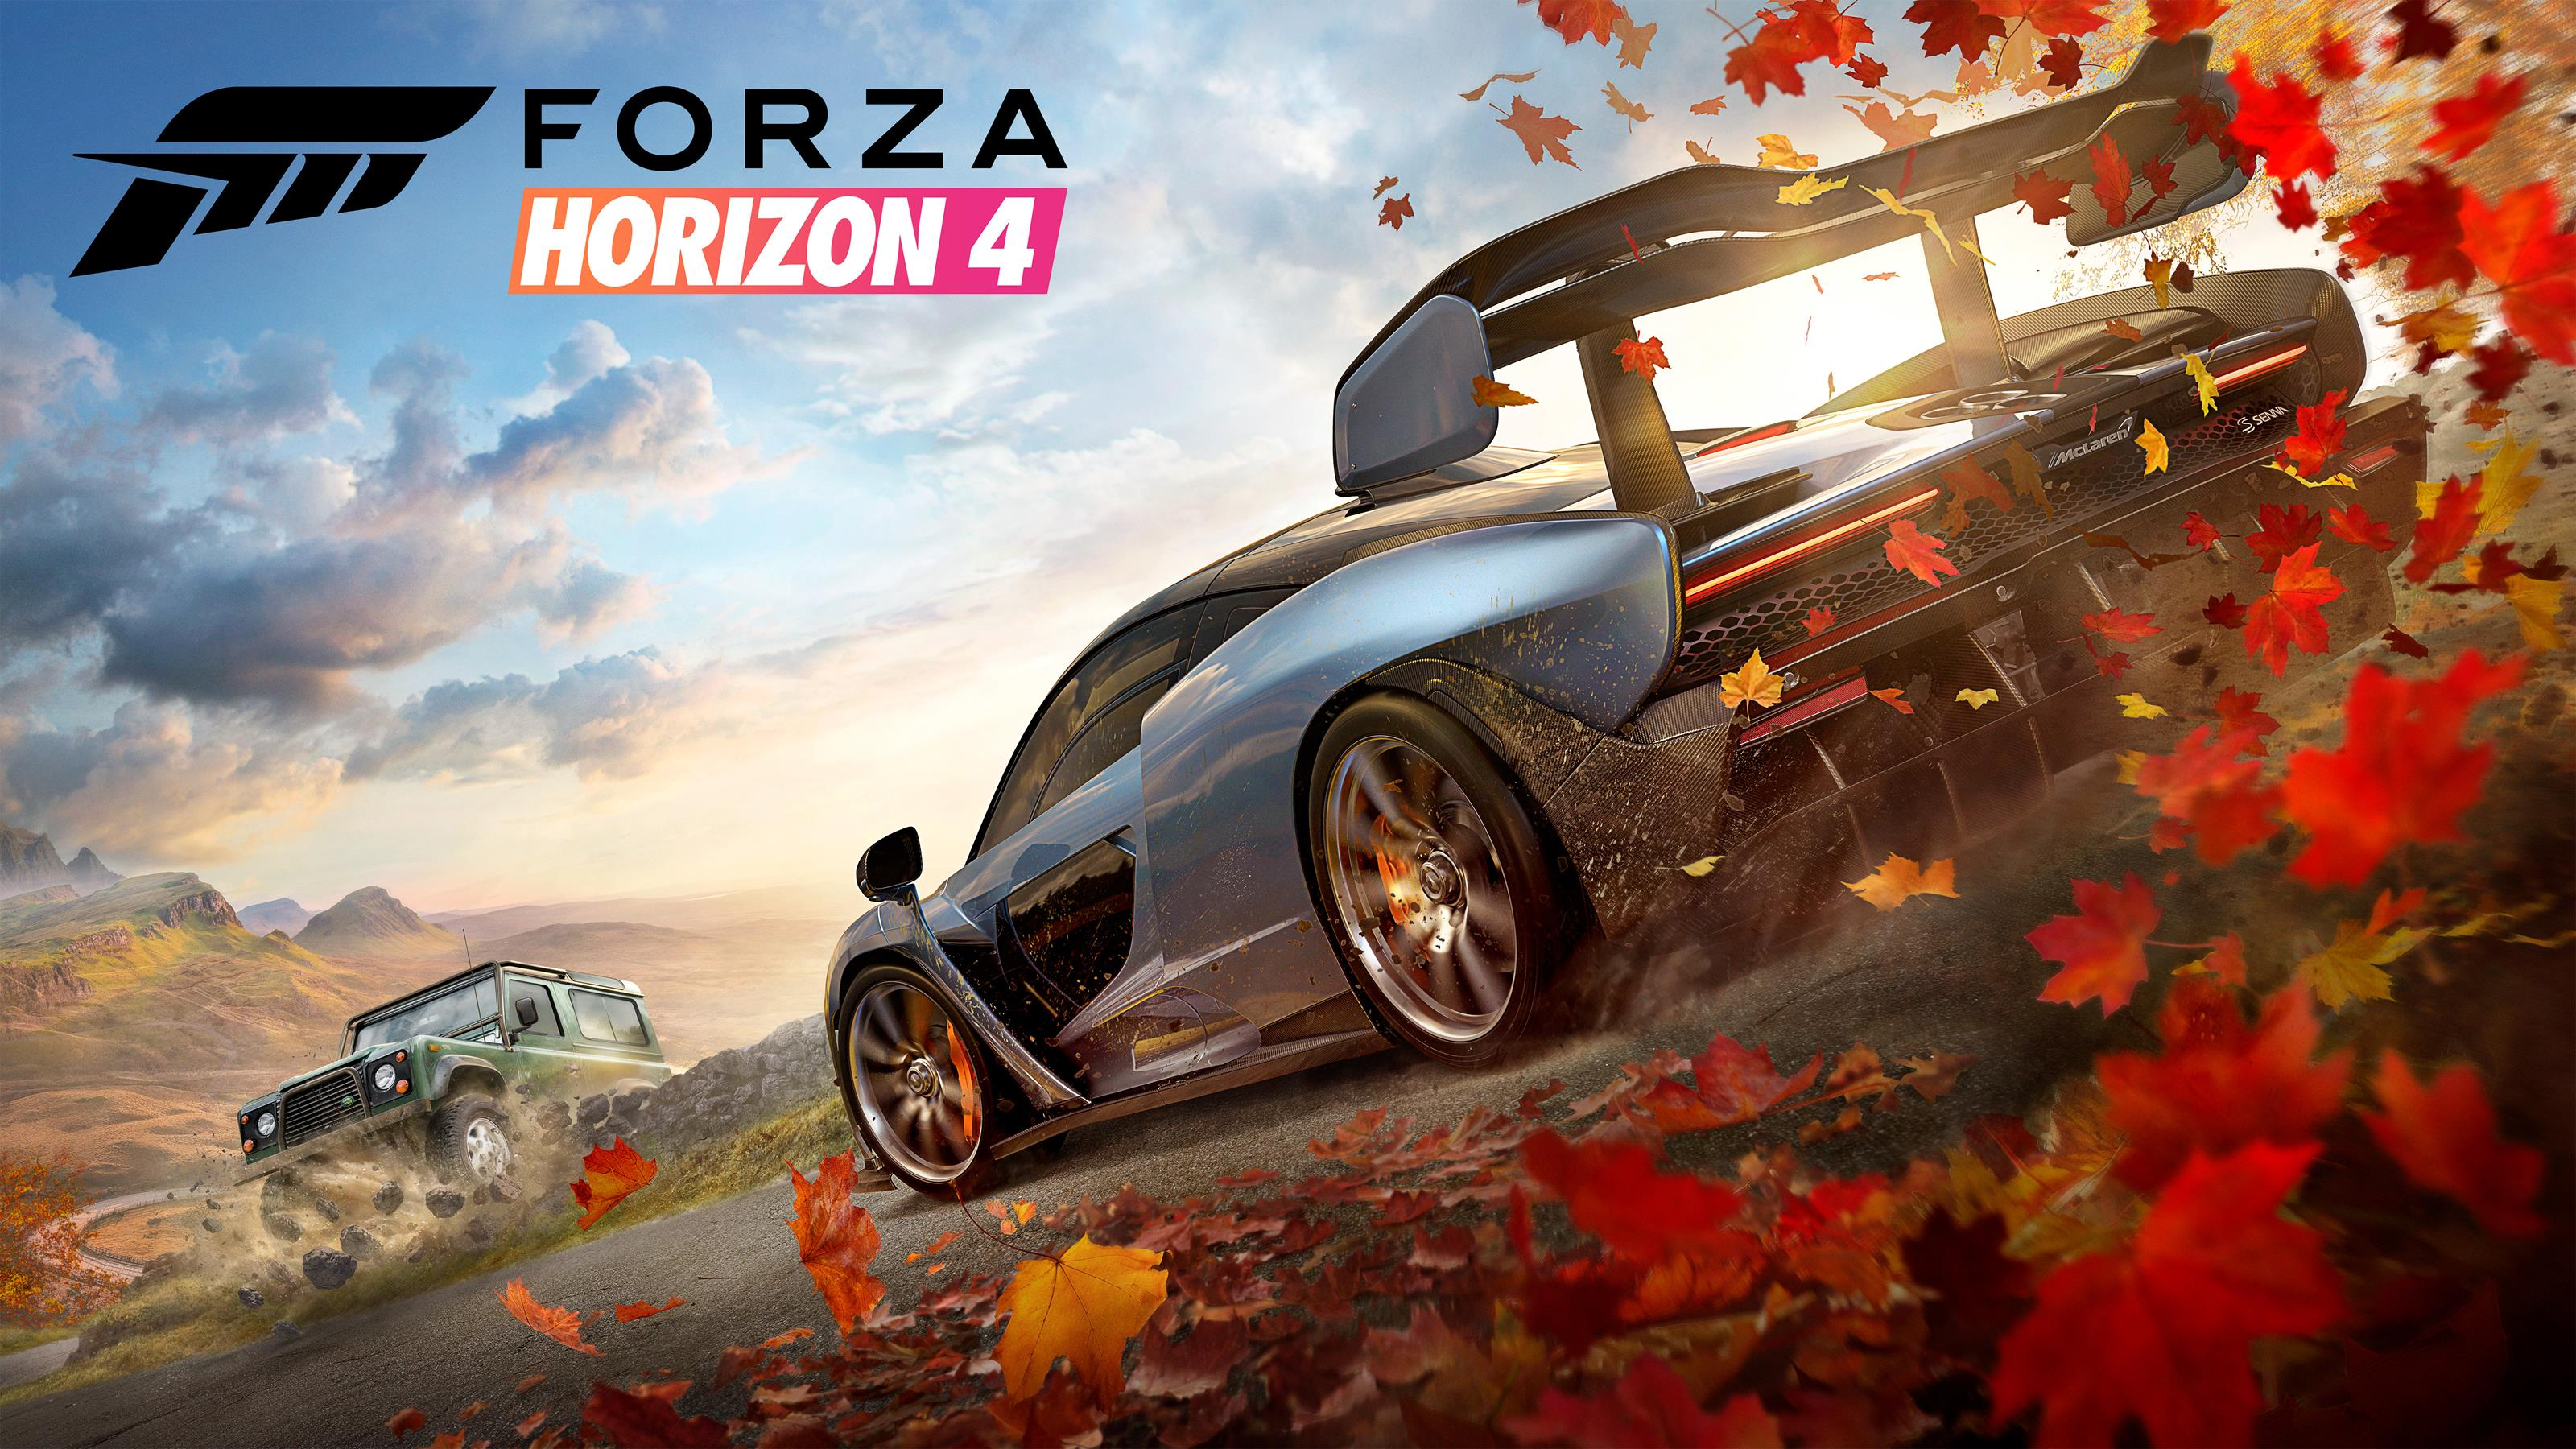 Forza Horizon 4: ten months on, Playground Games' racer is Xbox One's only exclusive masterpiece - VG247